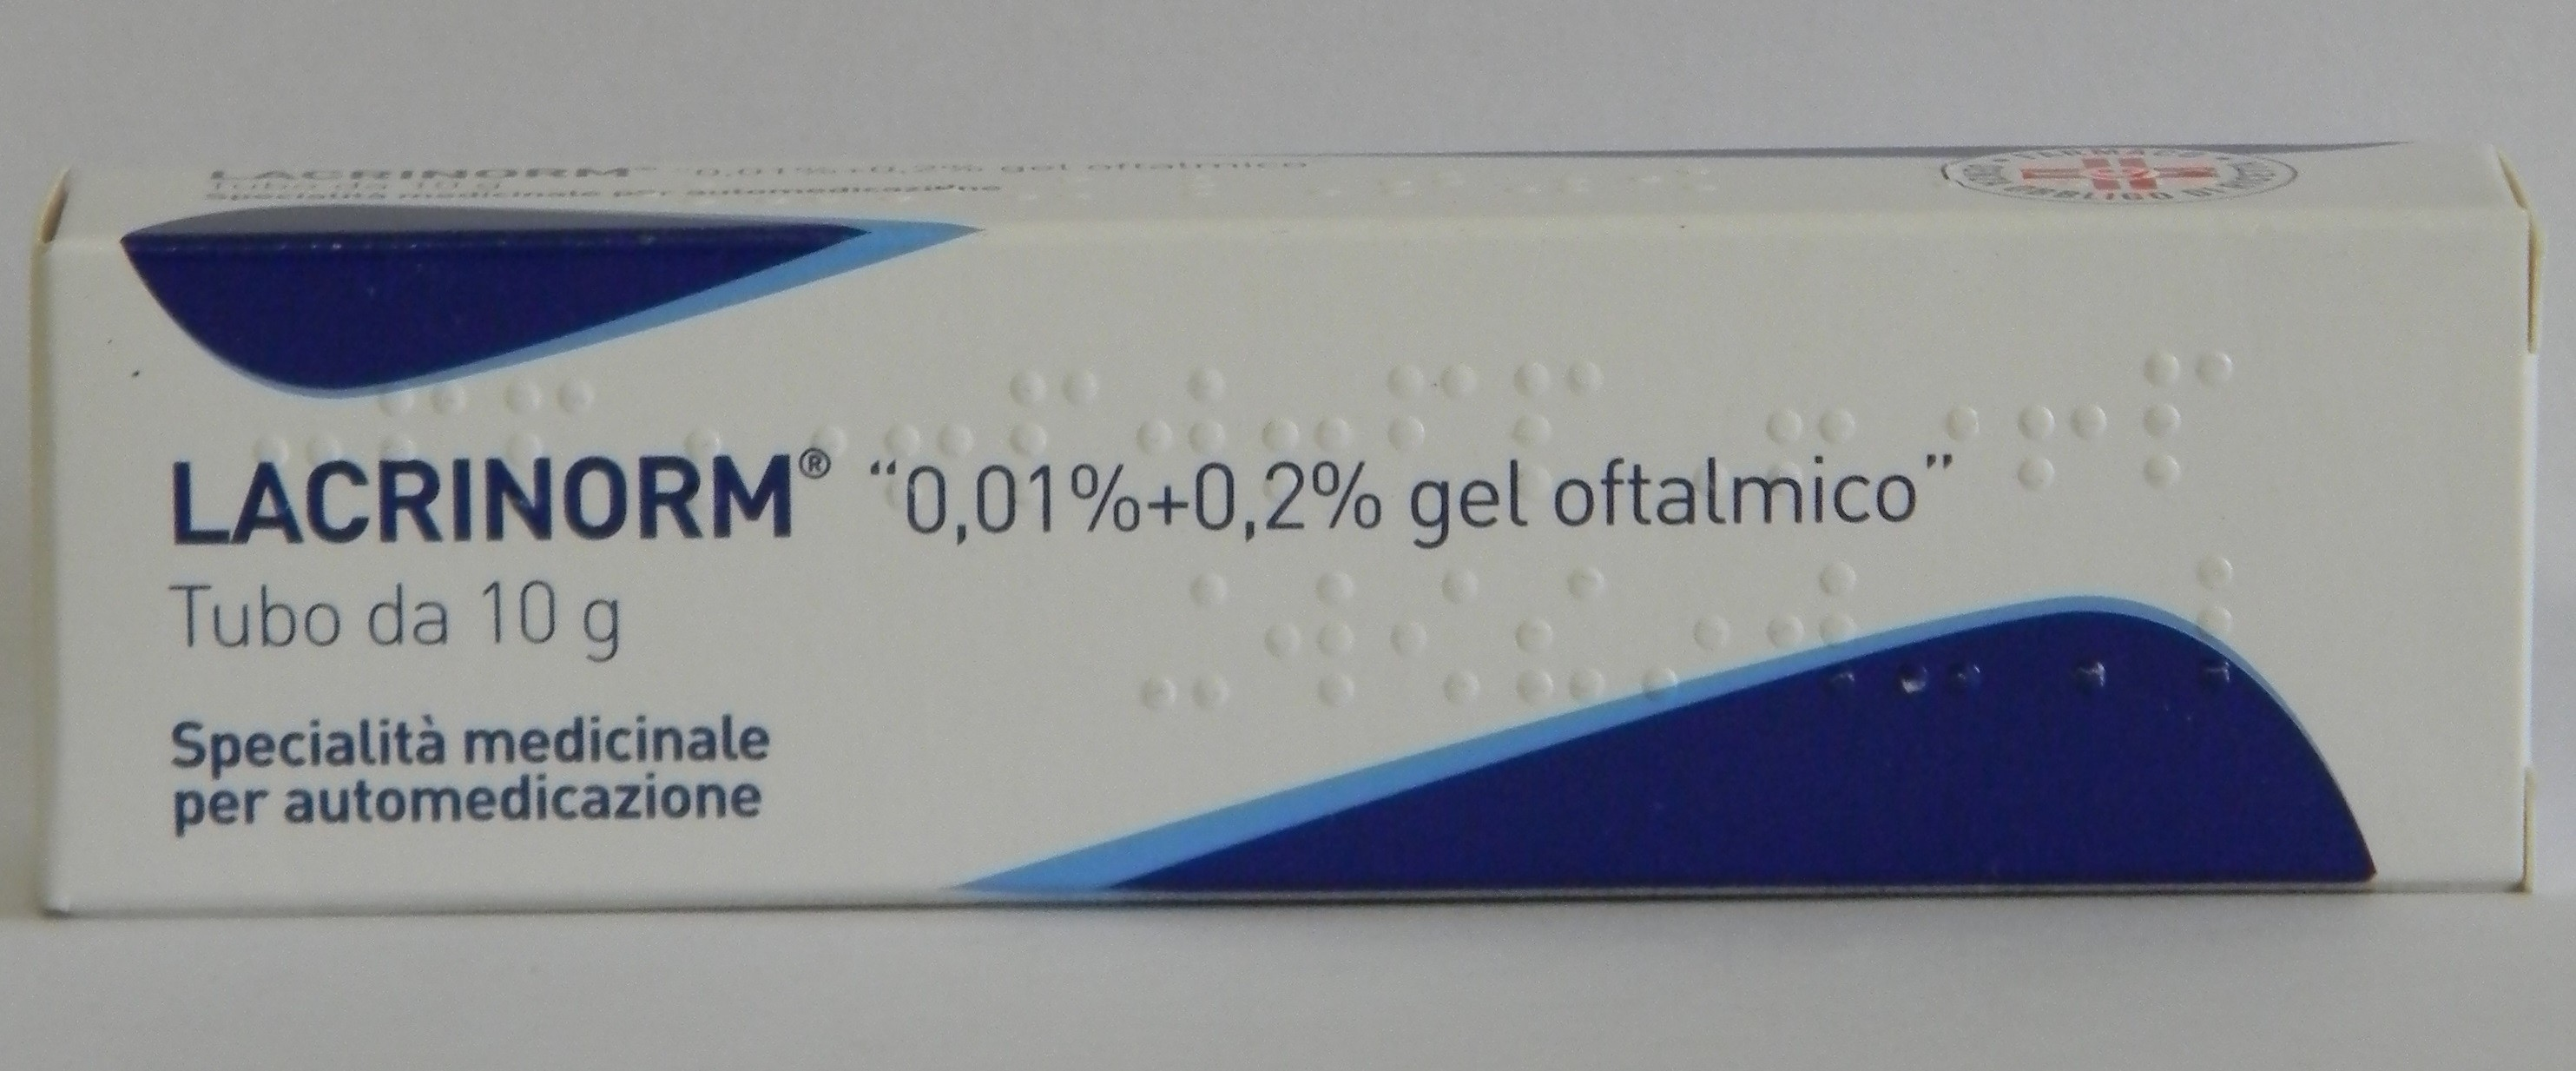 LACRINORM*GEL OFT 10G 0,01% - Farmaunclick.it